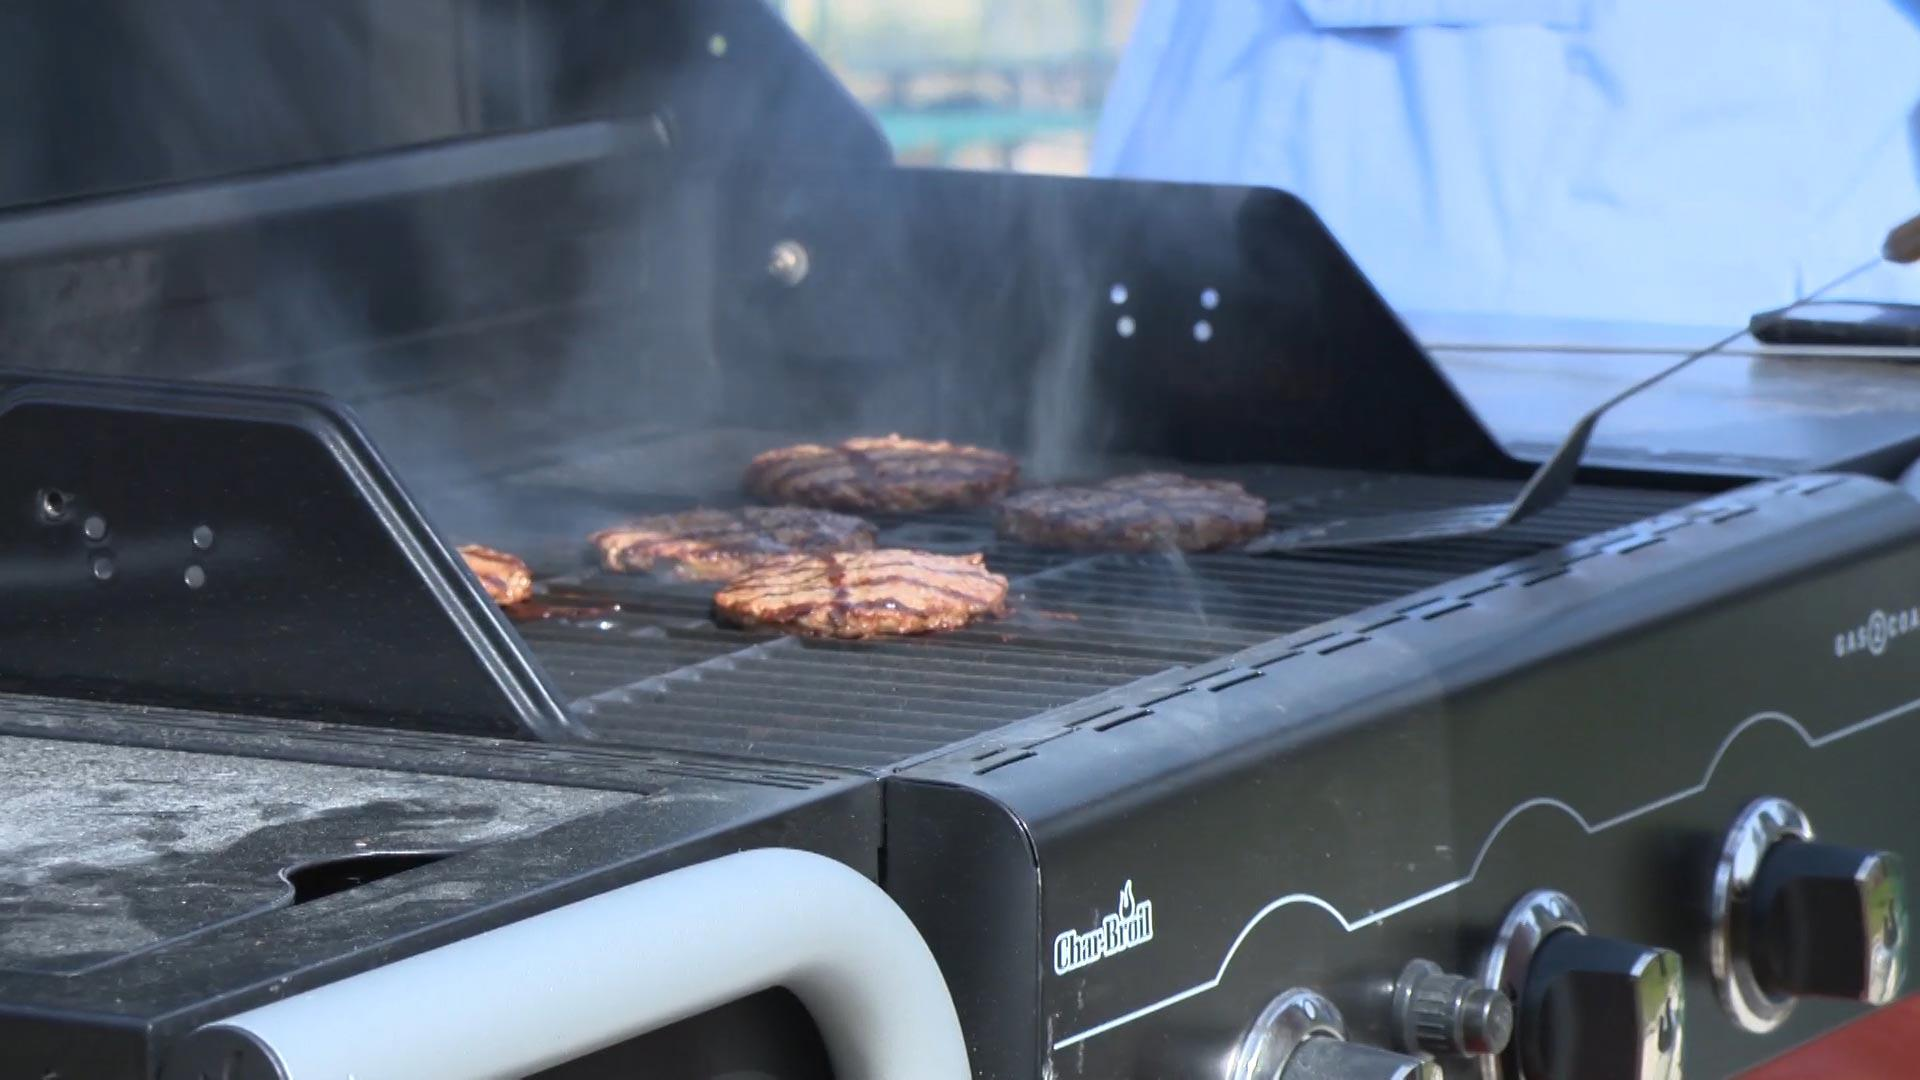 best indoor grill consumer reports